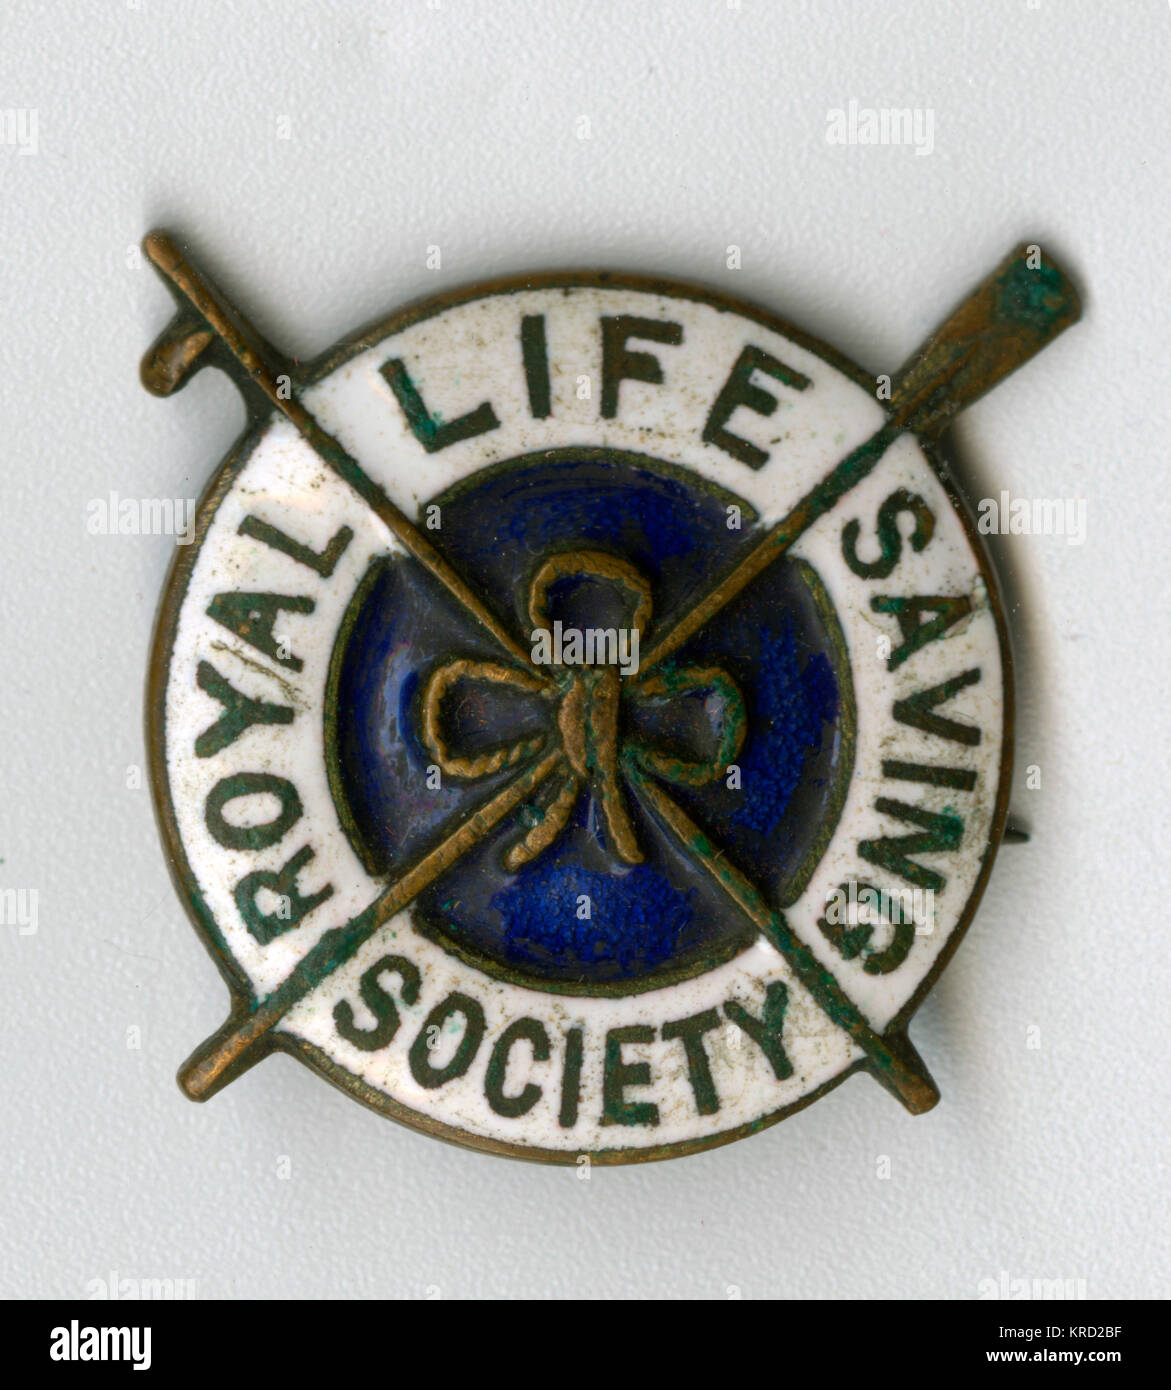 Badge of the Royal Life Saving Society, featuring a lifebelt design.      Date: early 20th century - Stock Image